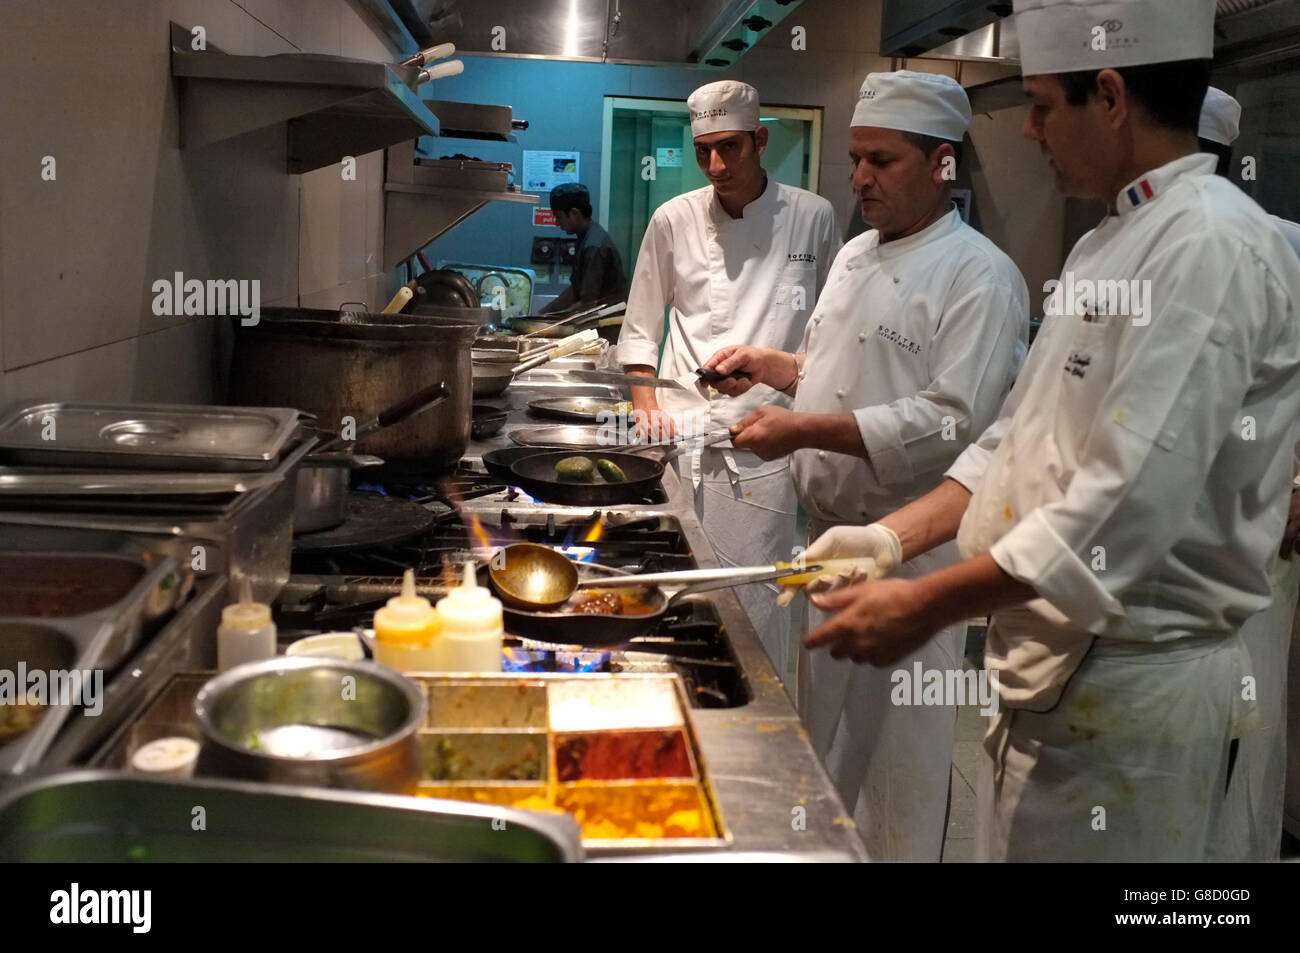 Chefs prepare food at the kitchen in jyran restaurant for Kitchen 8 restaurant